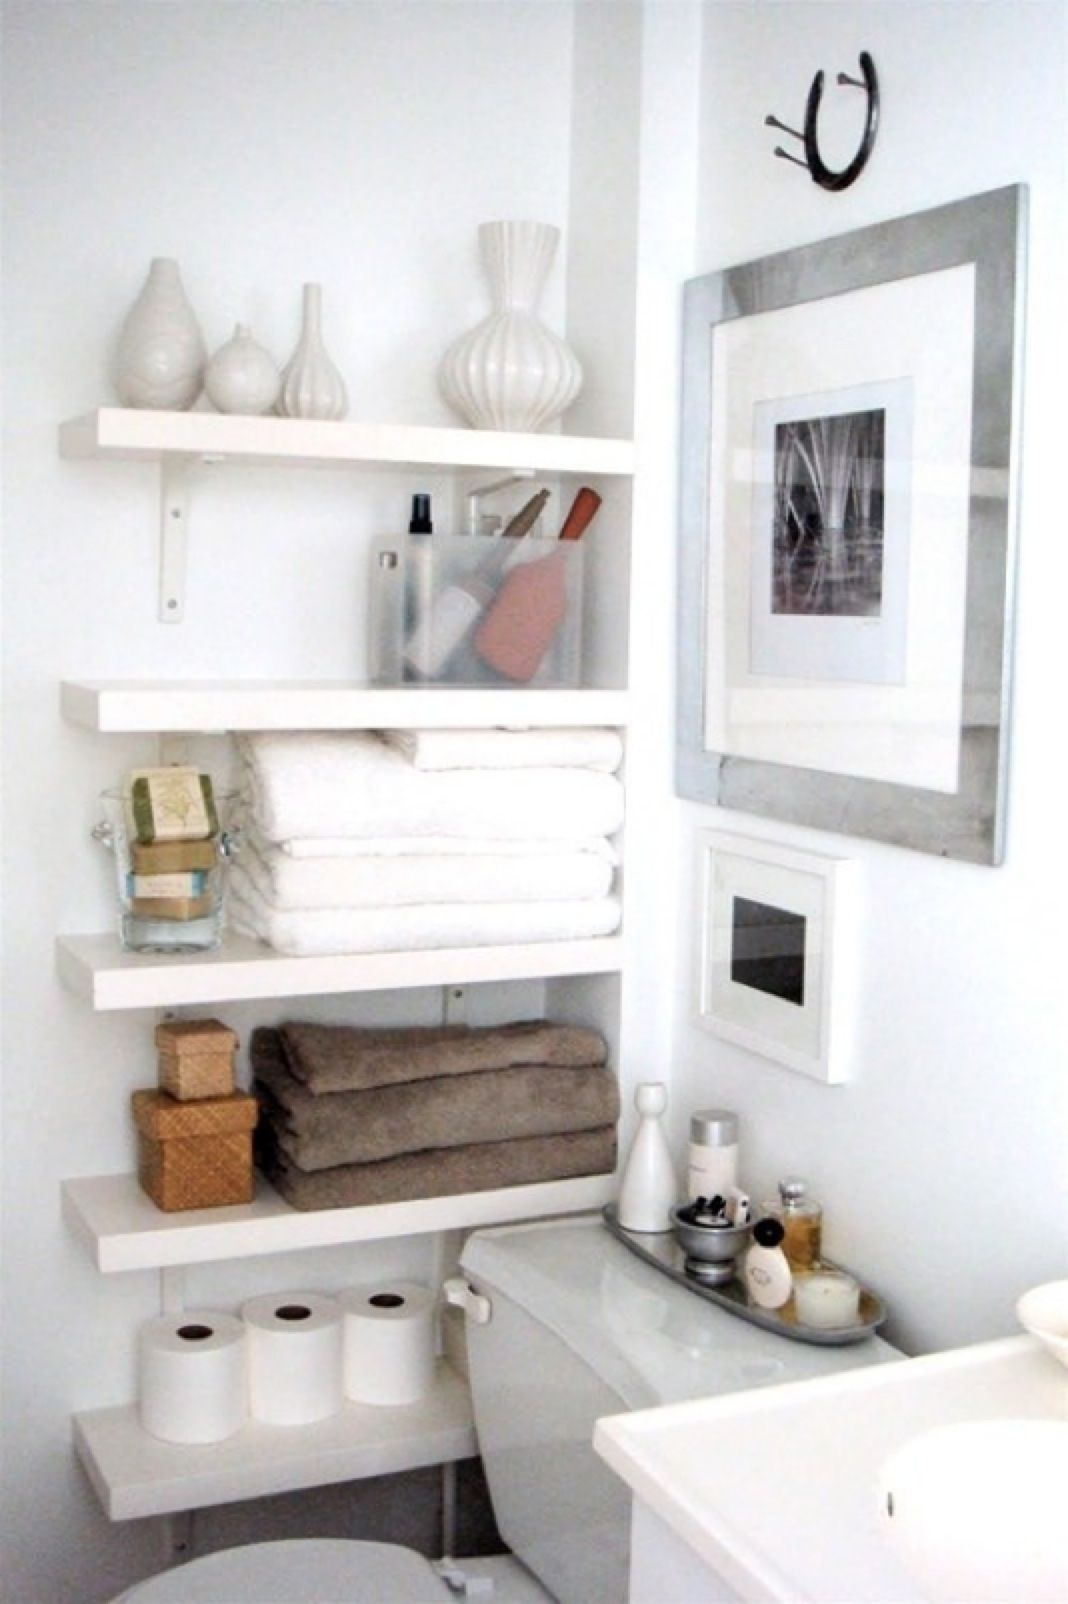 Bathroom shelves. | Kk home 2 | Pinterest | Shelves, Organizations ...